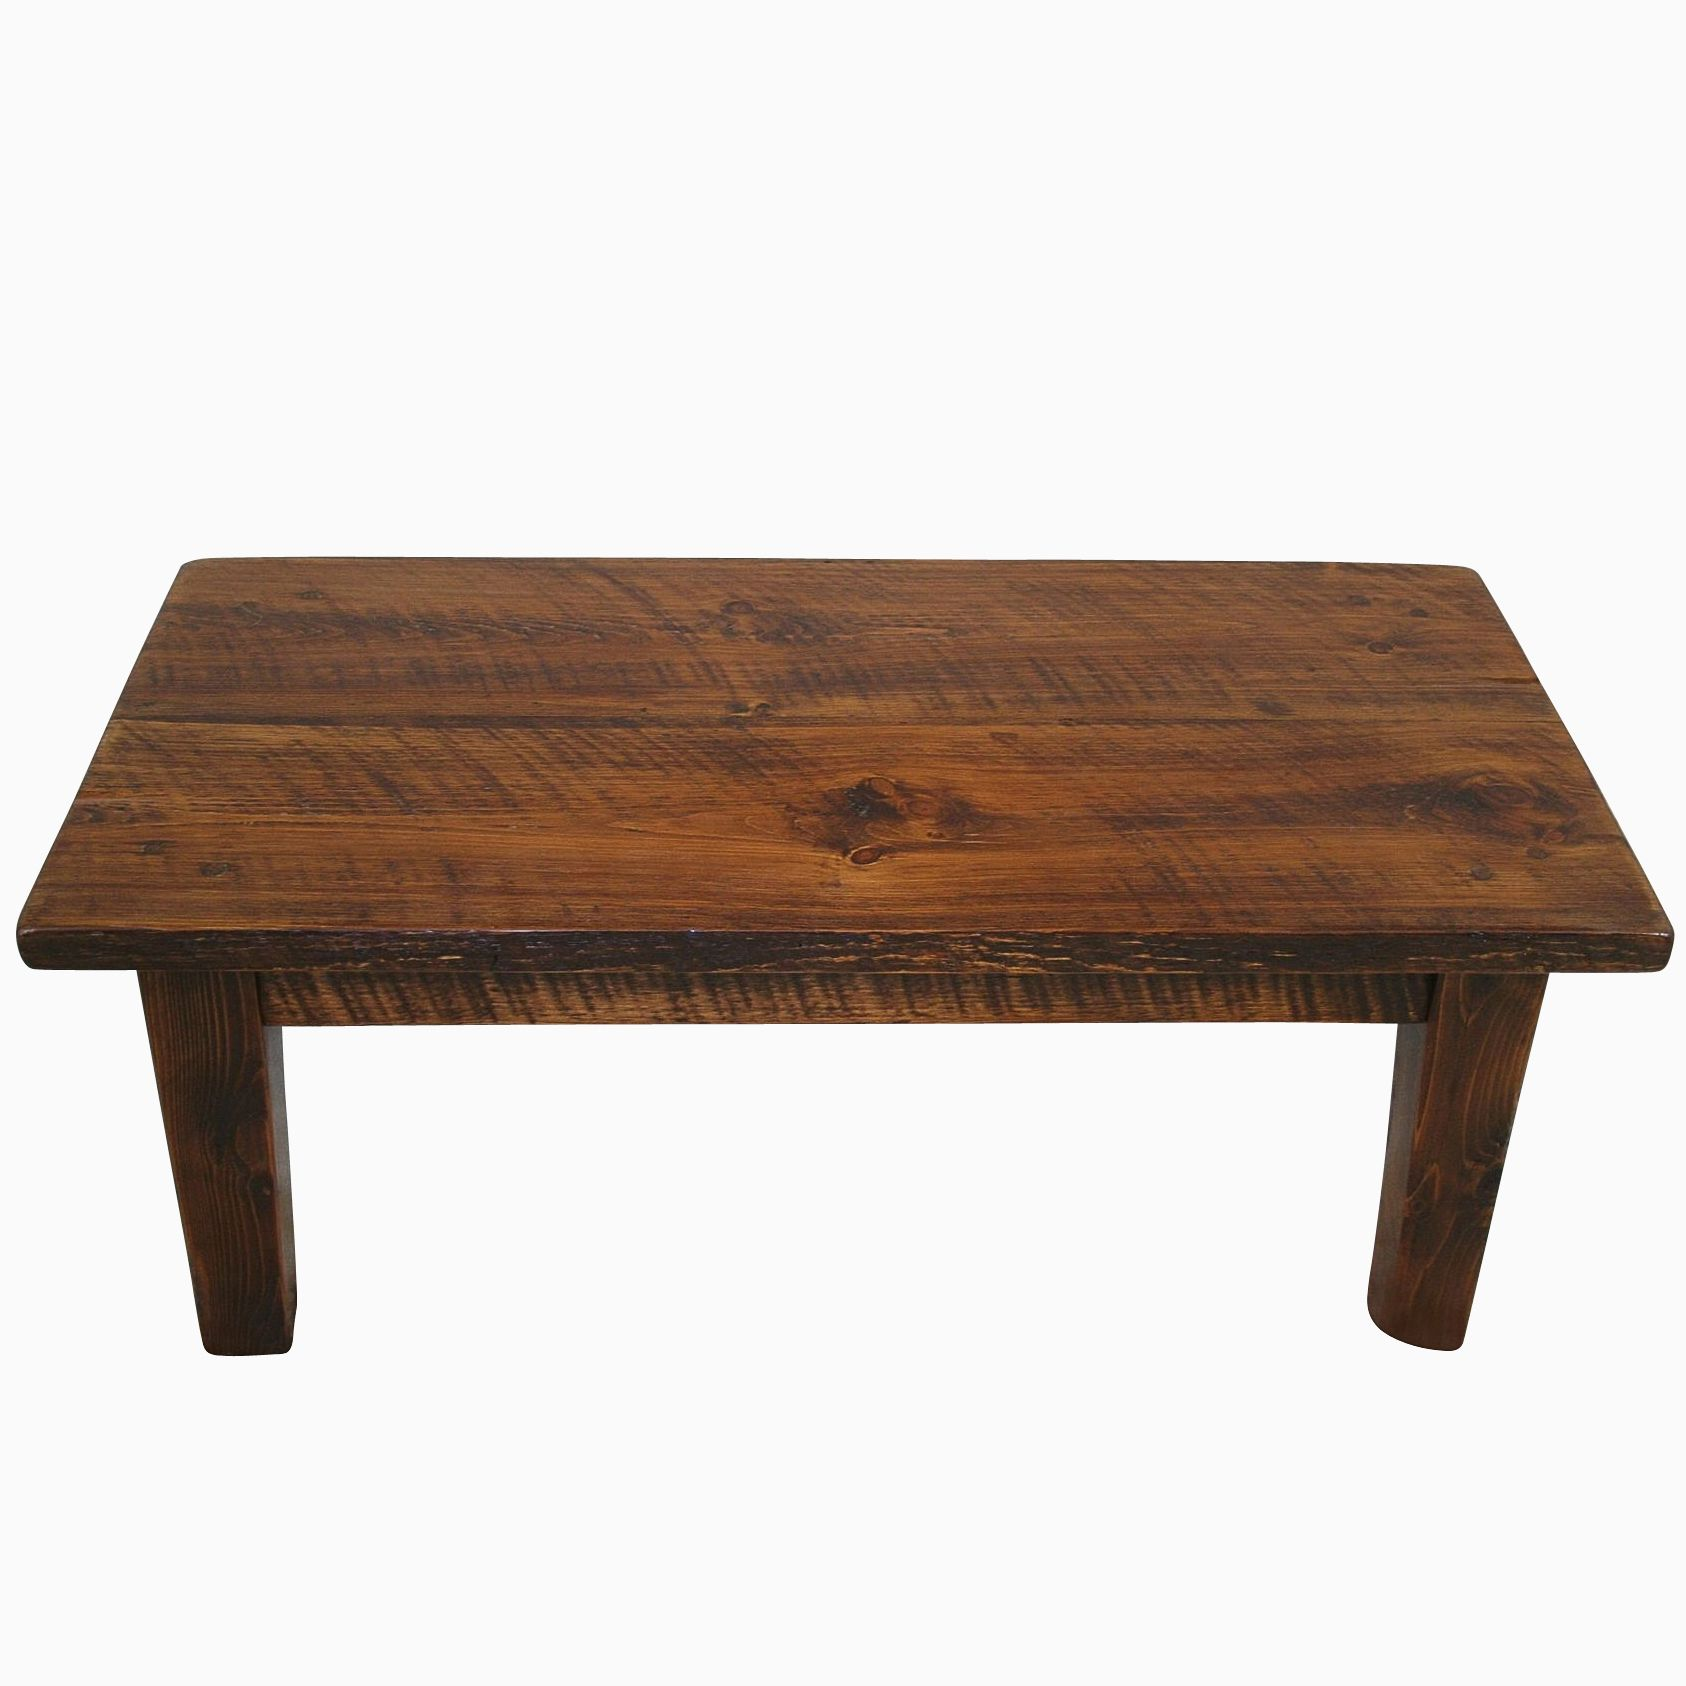 Buy a Custom Rough Sawn Pine Rustic Style Coffee Table made to